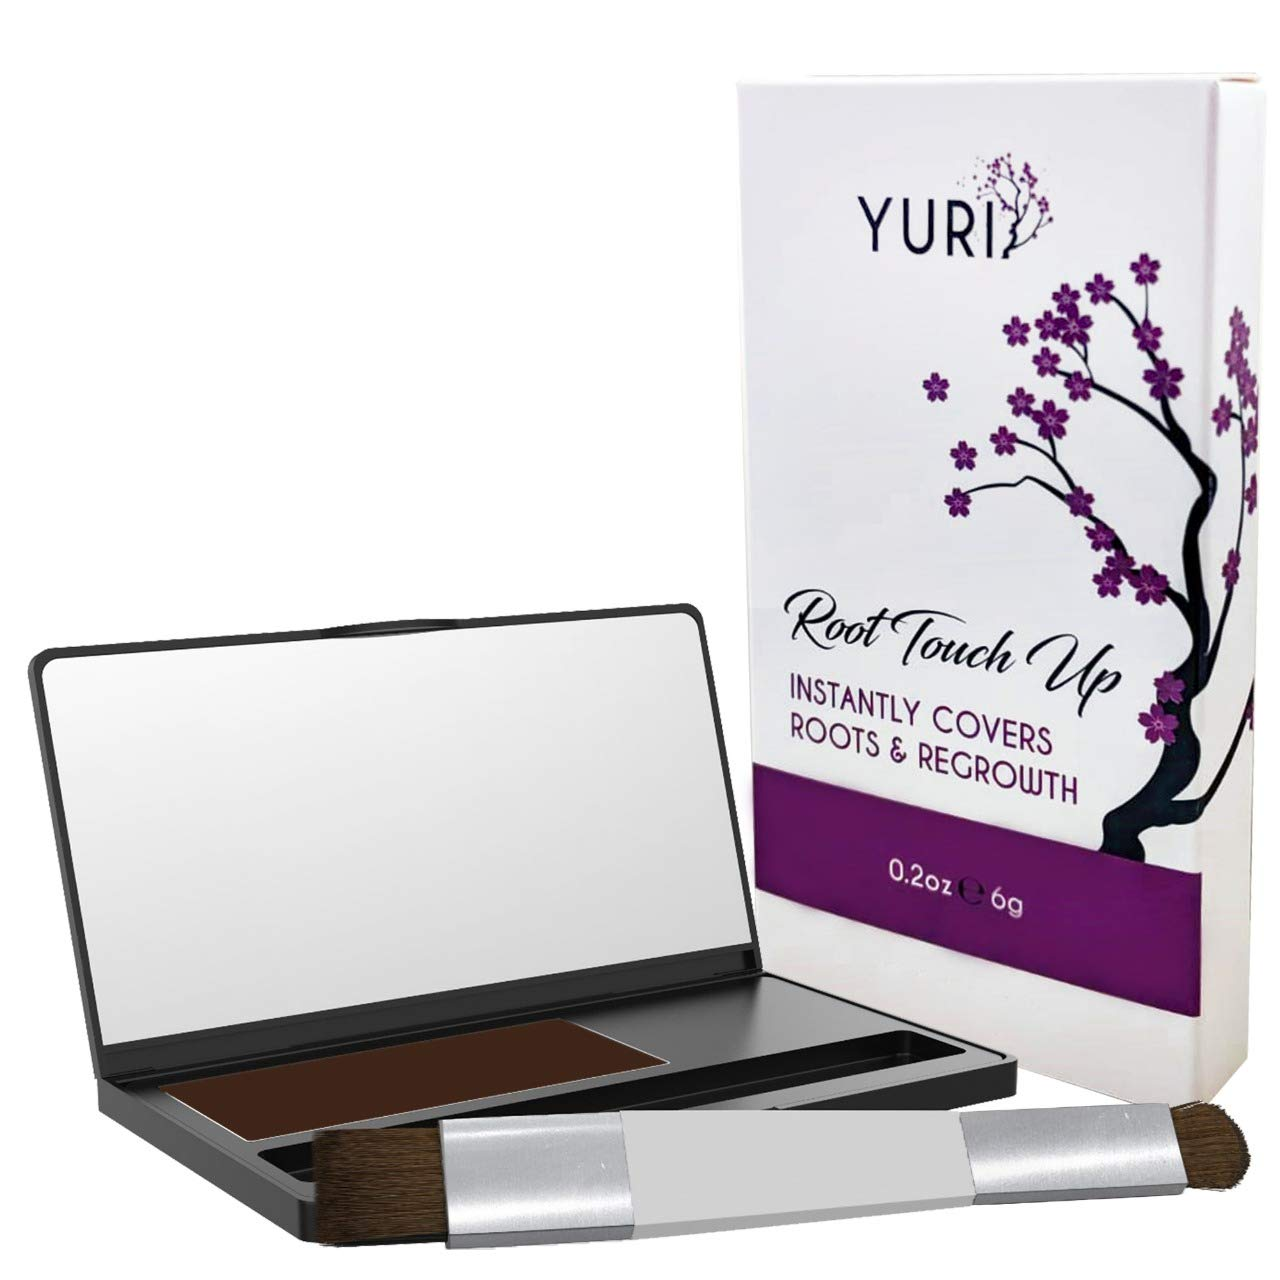 Premium Root Touch Up - Temporary Instant Root Concealer for Extending Time Between Coloring - Cover Up Grays and Roots with Color and no Spray - Lasts Until You Shampoo by Yuri